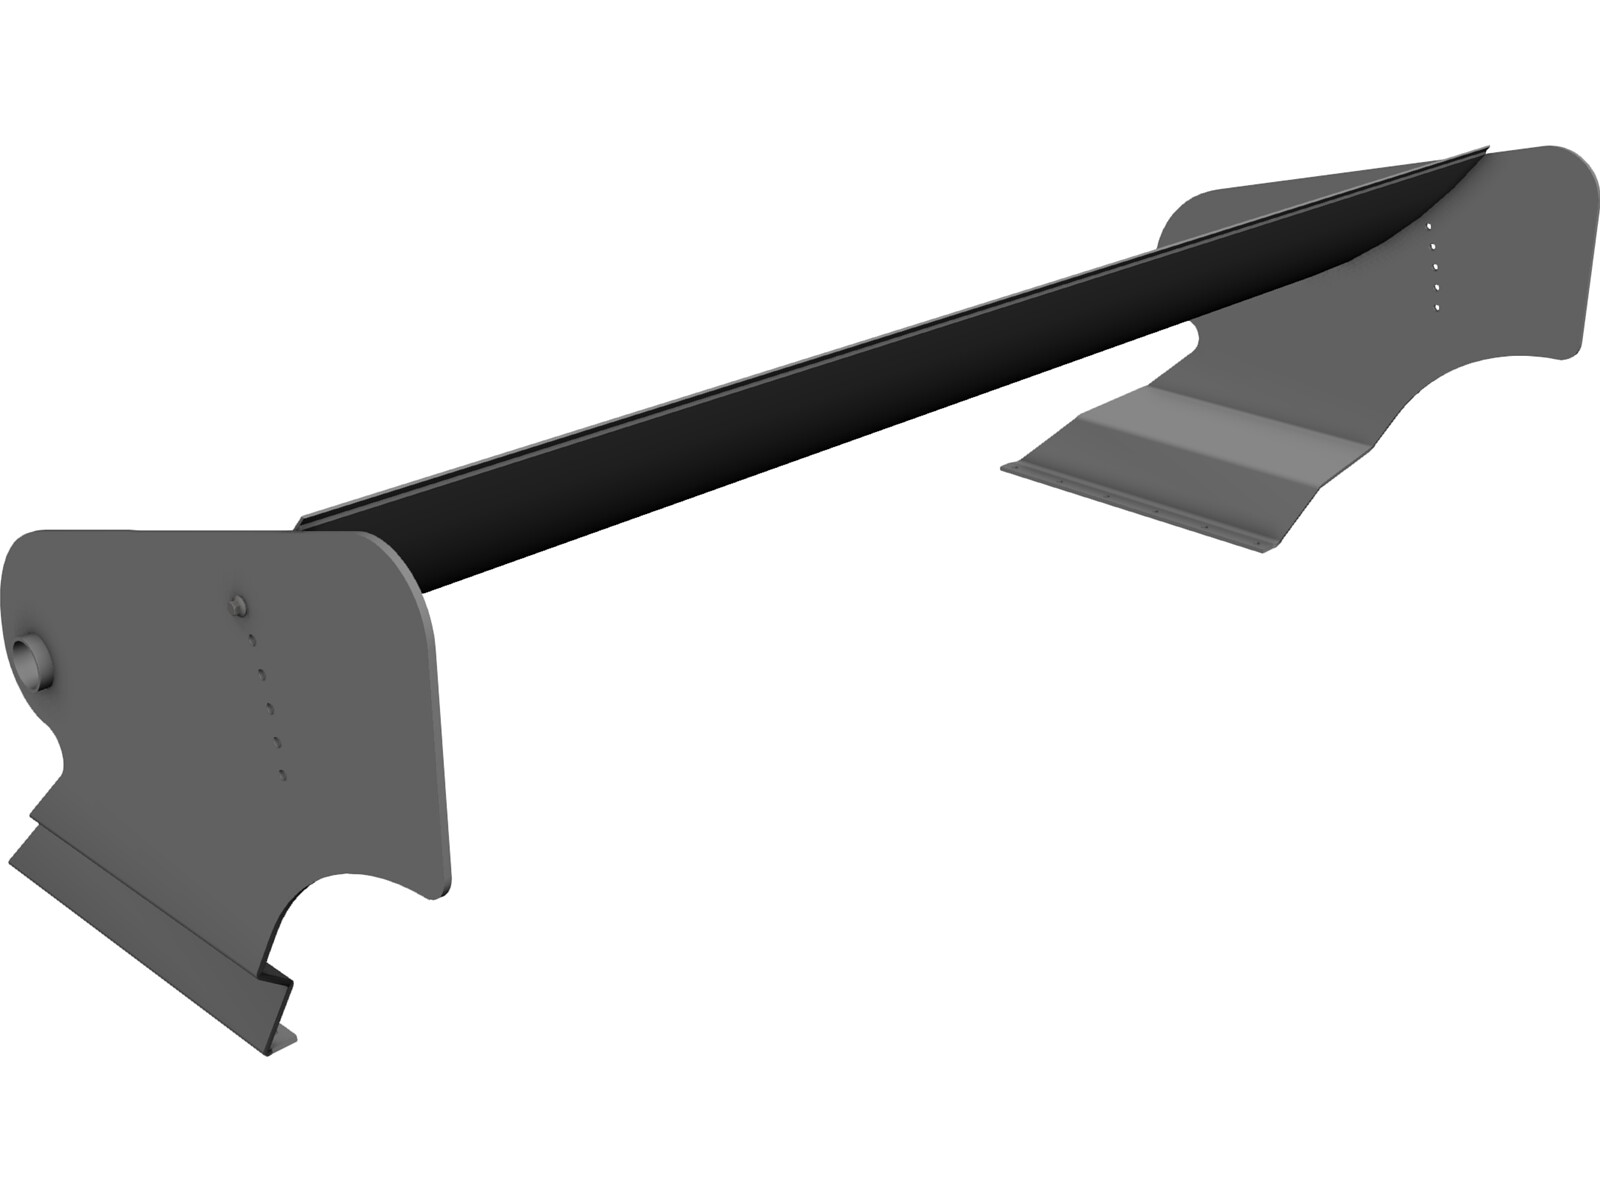 Group 5 Racing Rear Spoiler Wing 3D CAD Model